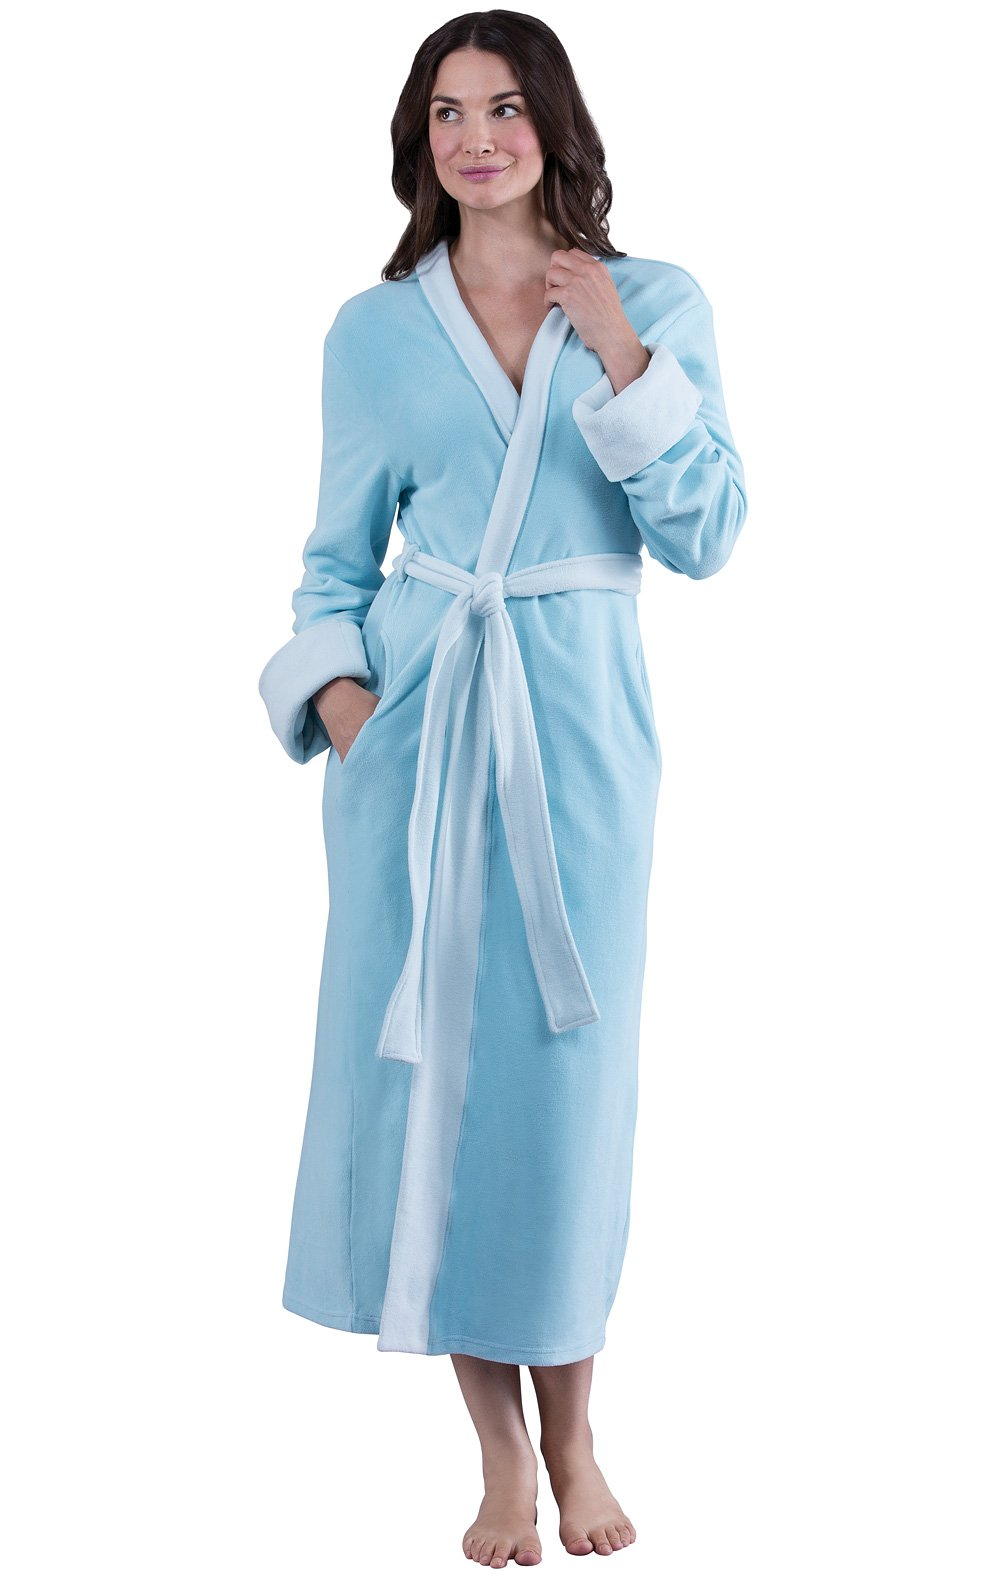 PajamaGram Fleece Robes for Women - Ultra Plush Women's Fleece Robes